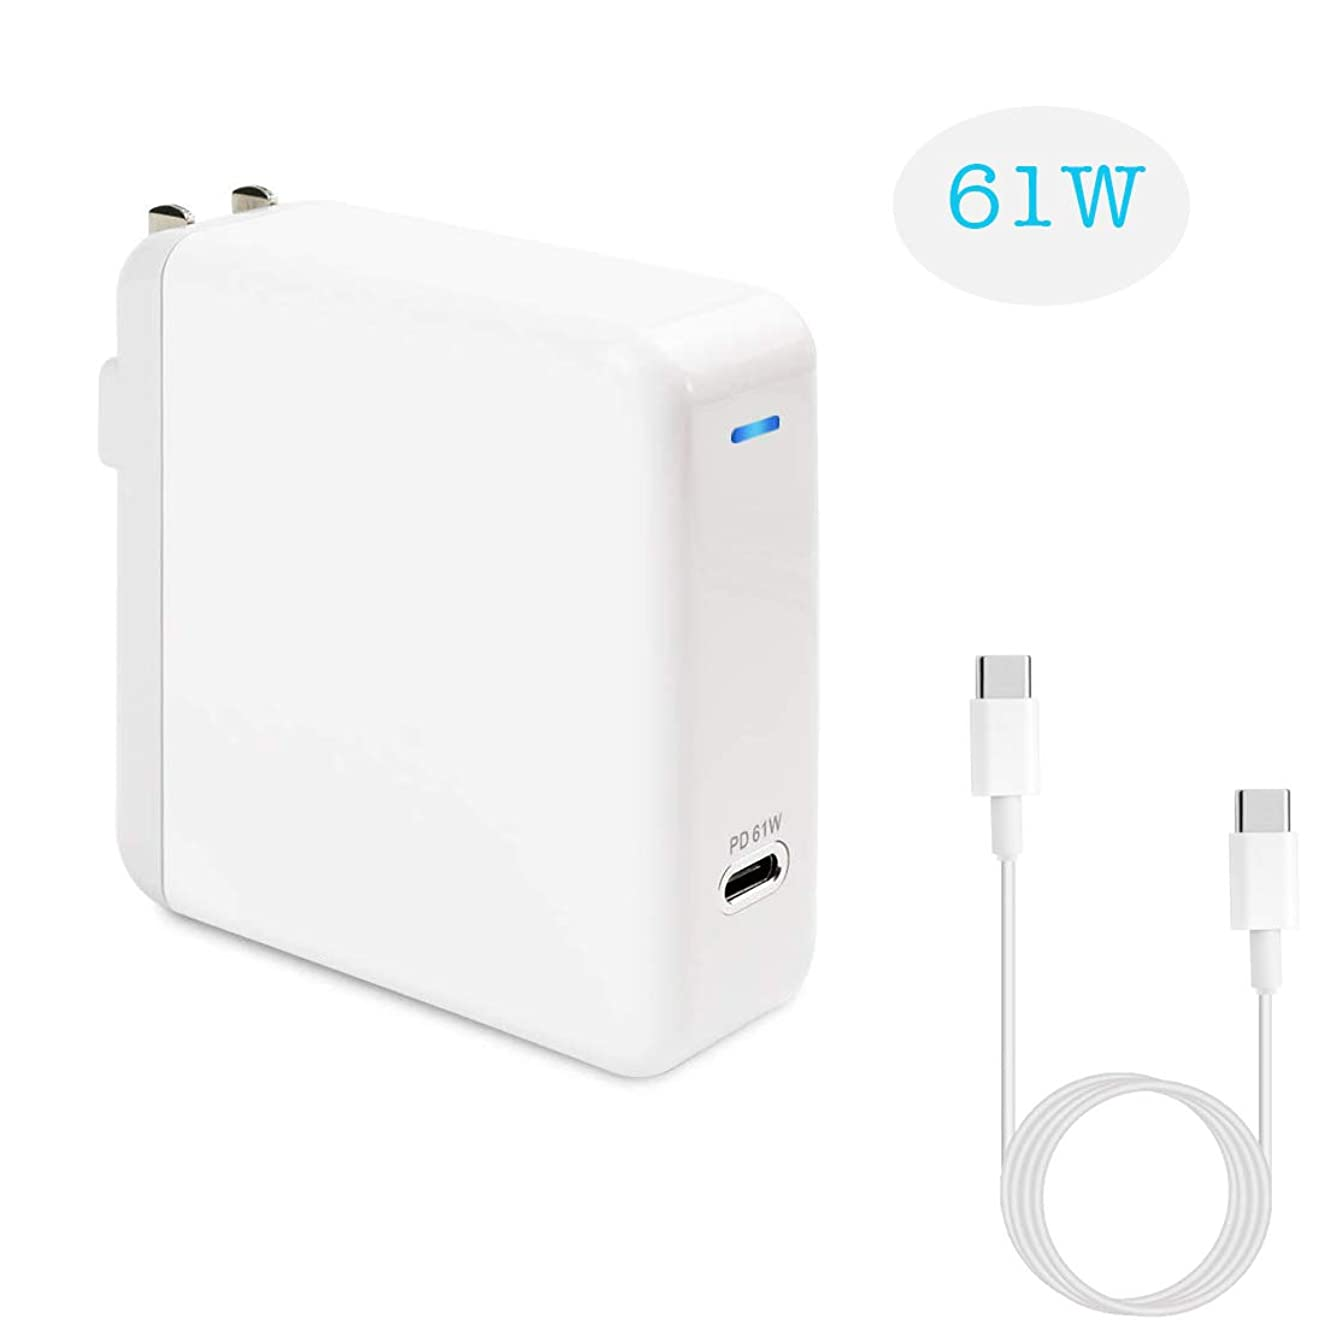 USB C Charger, 61W USB Type C Power Adapter Wall Charger with 3.3ft USB-C Cable, PD Charger Replacement for MacBook Pro/Air, HP Spectre, Dell XPS, iPad Pro, iPhone, Galaxy and More [UL Listed]